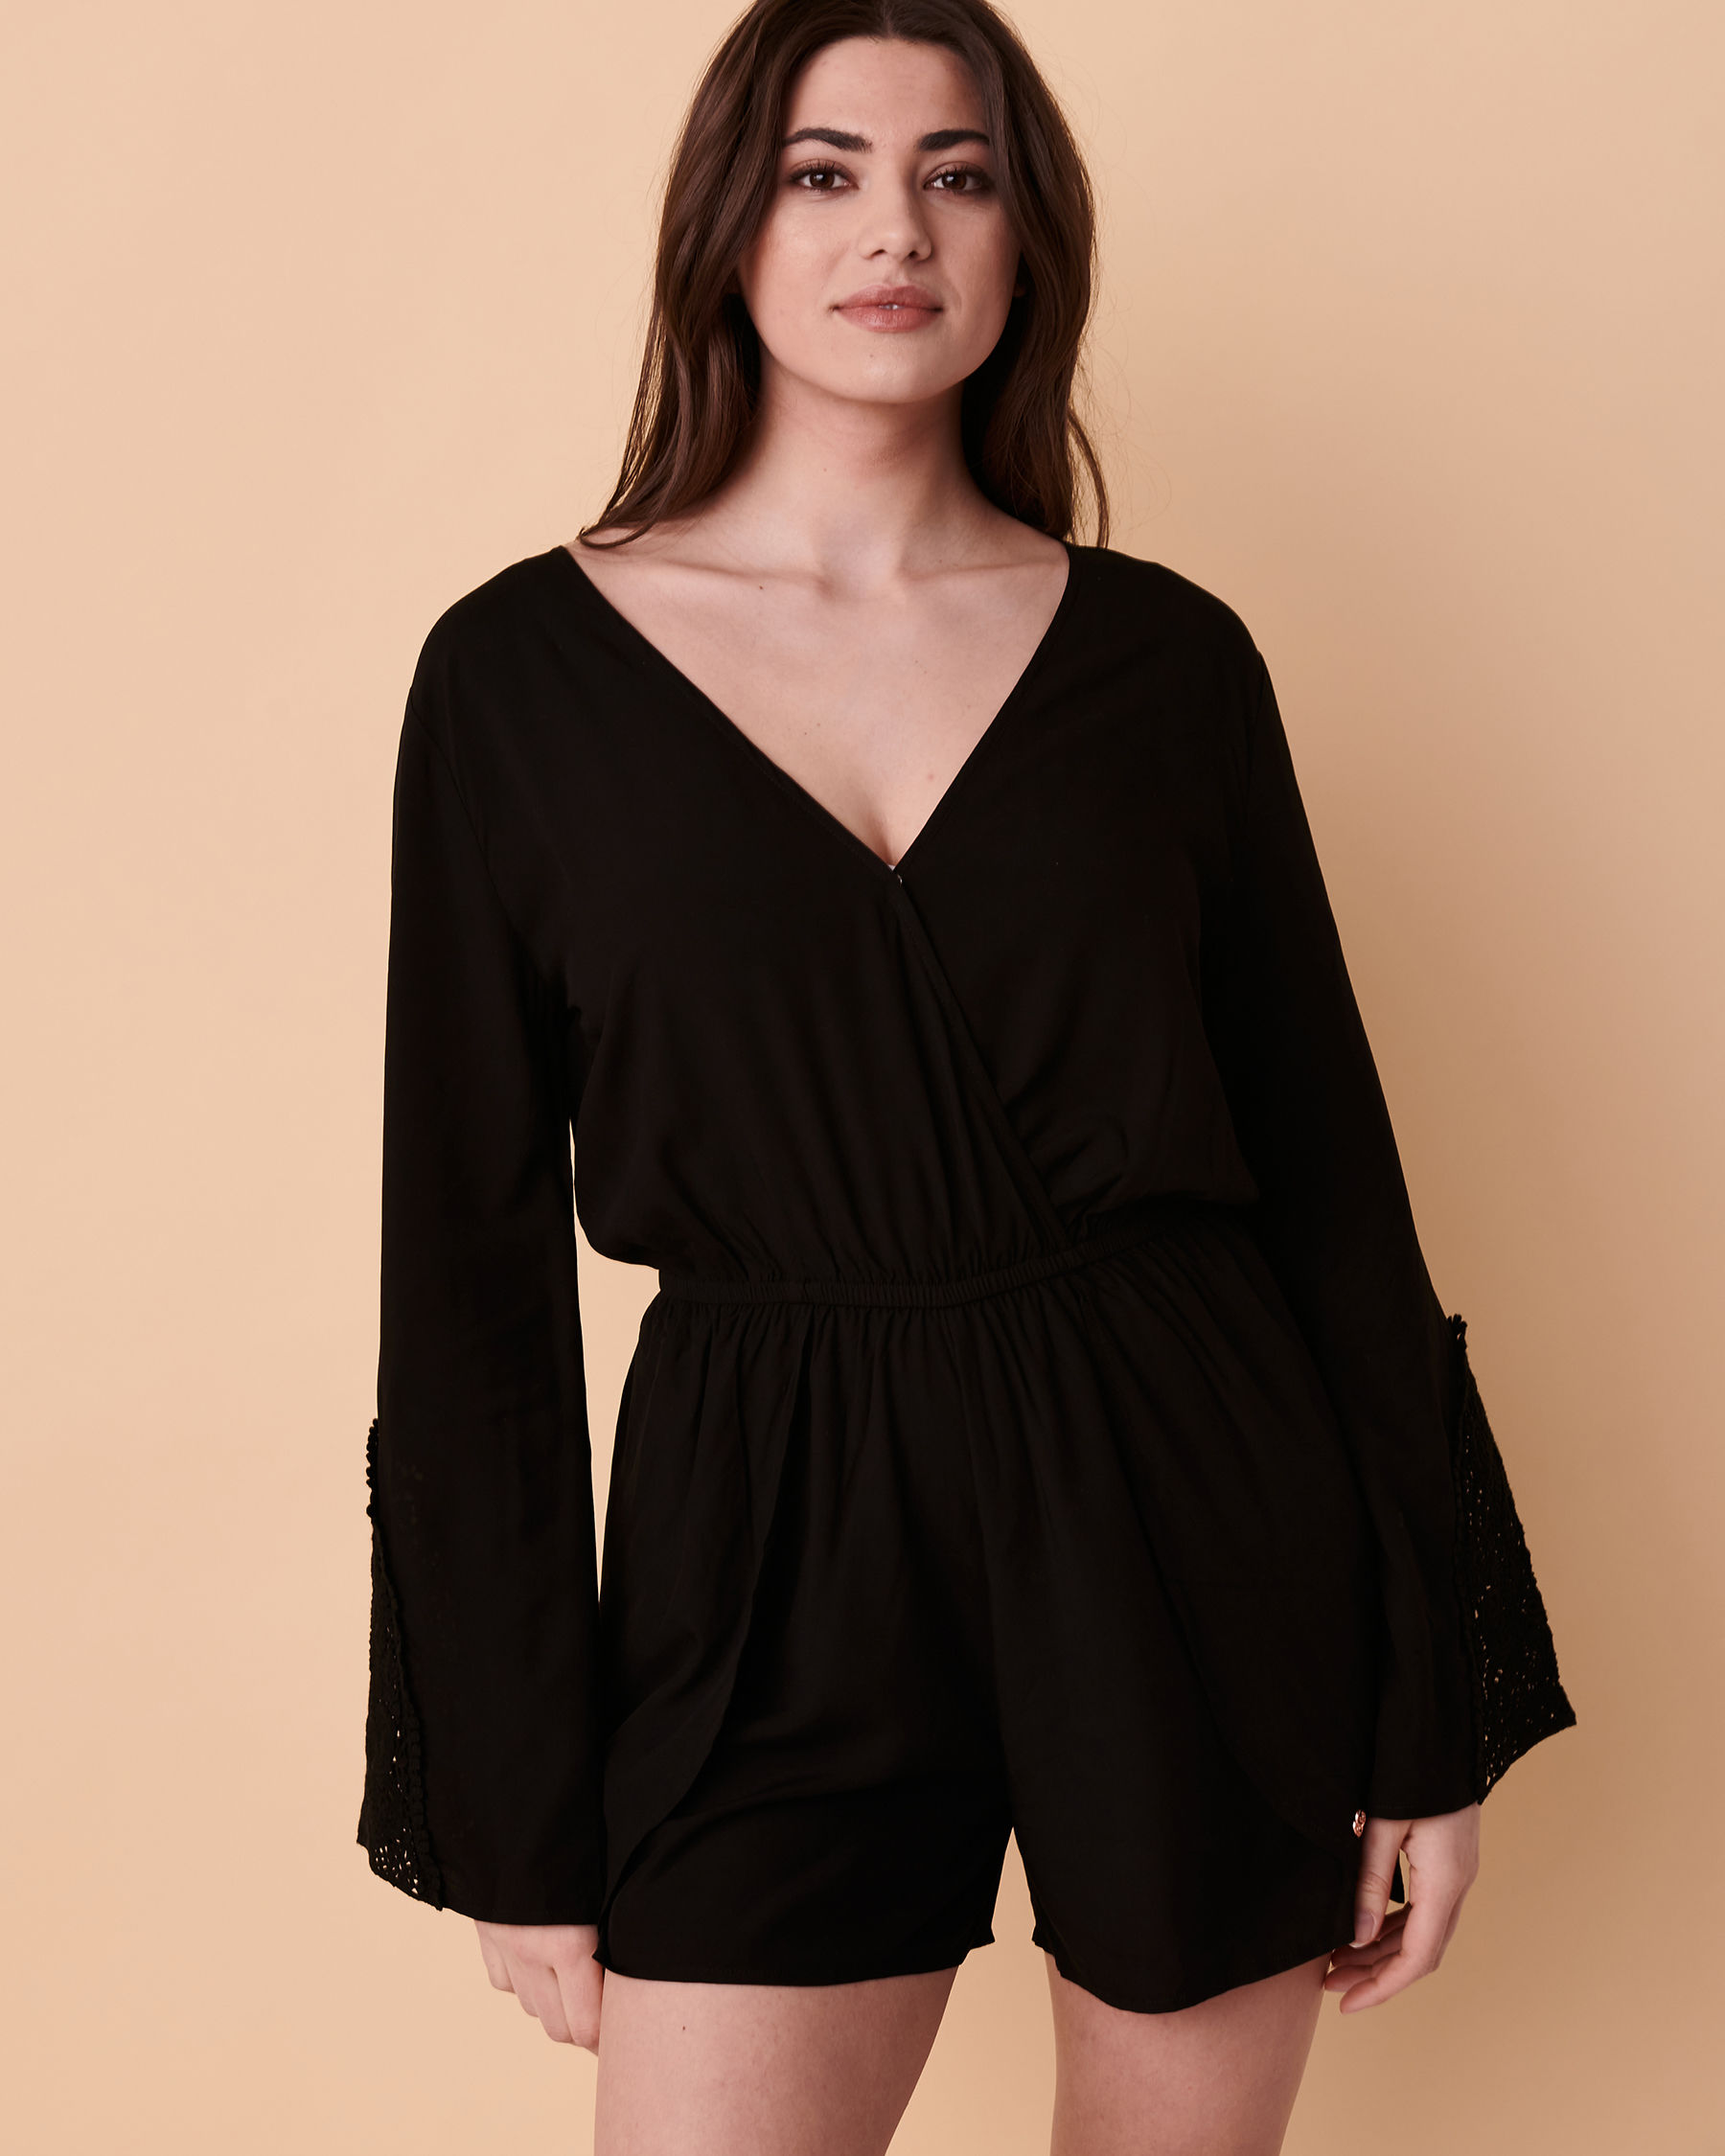 TURQUOISE COUTURE Bell Sleeve Romper Black 02300008 - View1